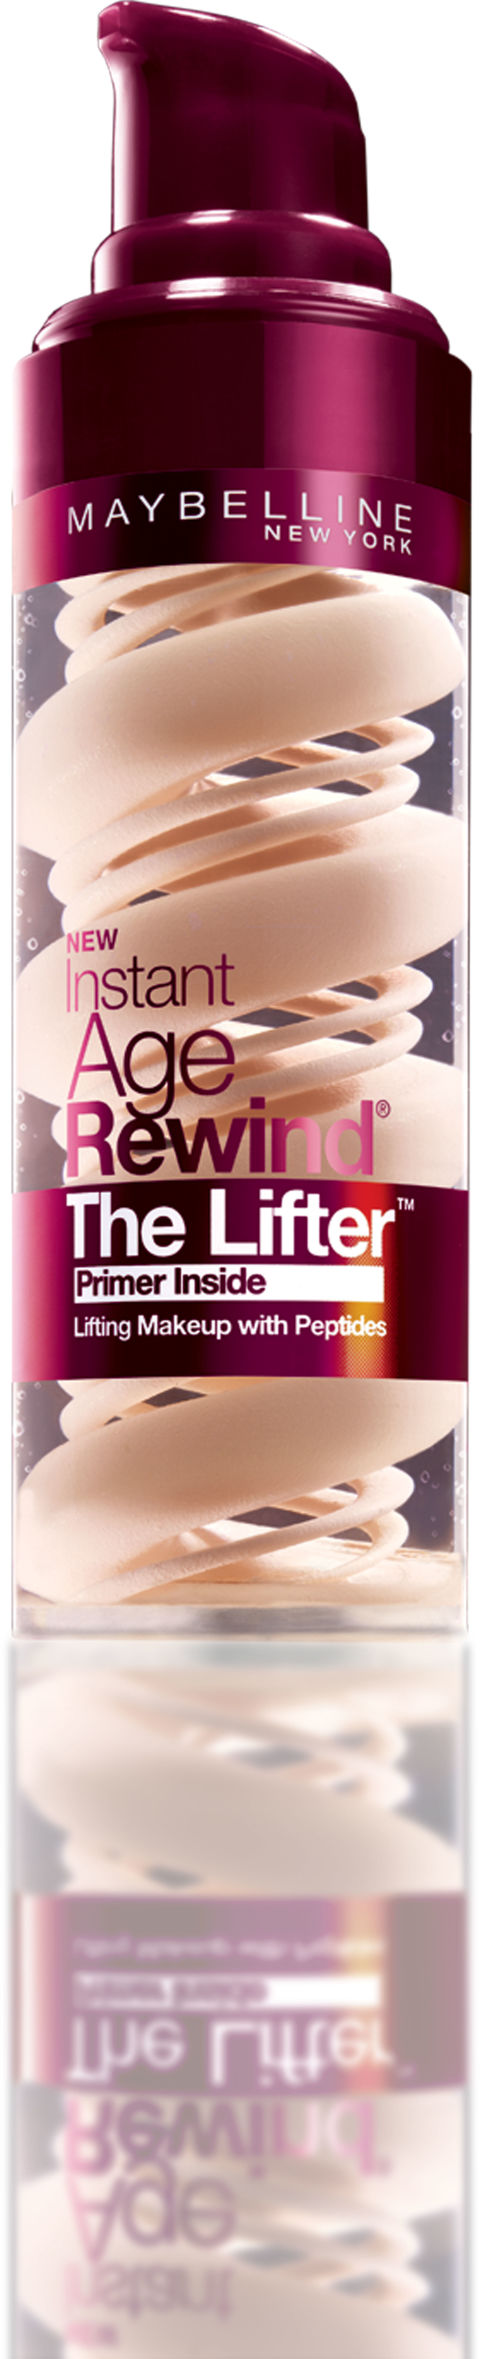 Best Makeup Products - Beauty Products That Will Change..